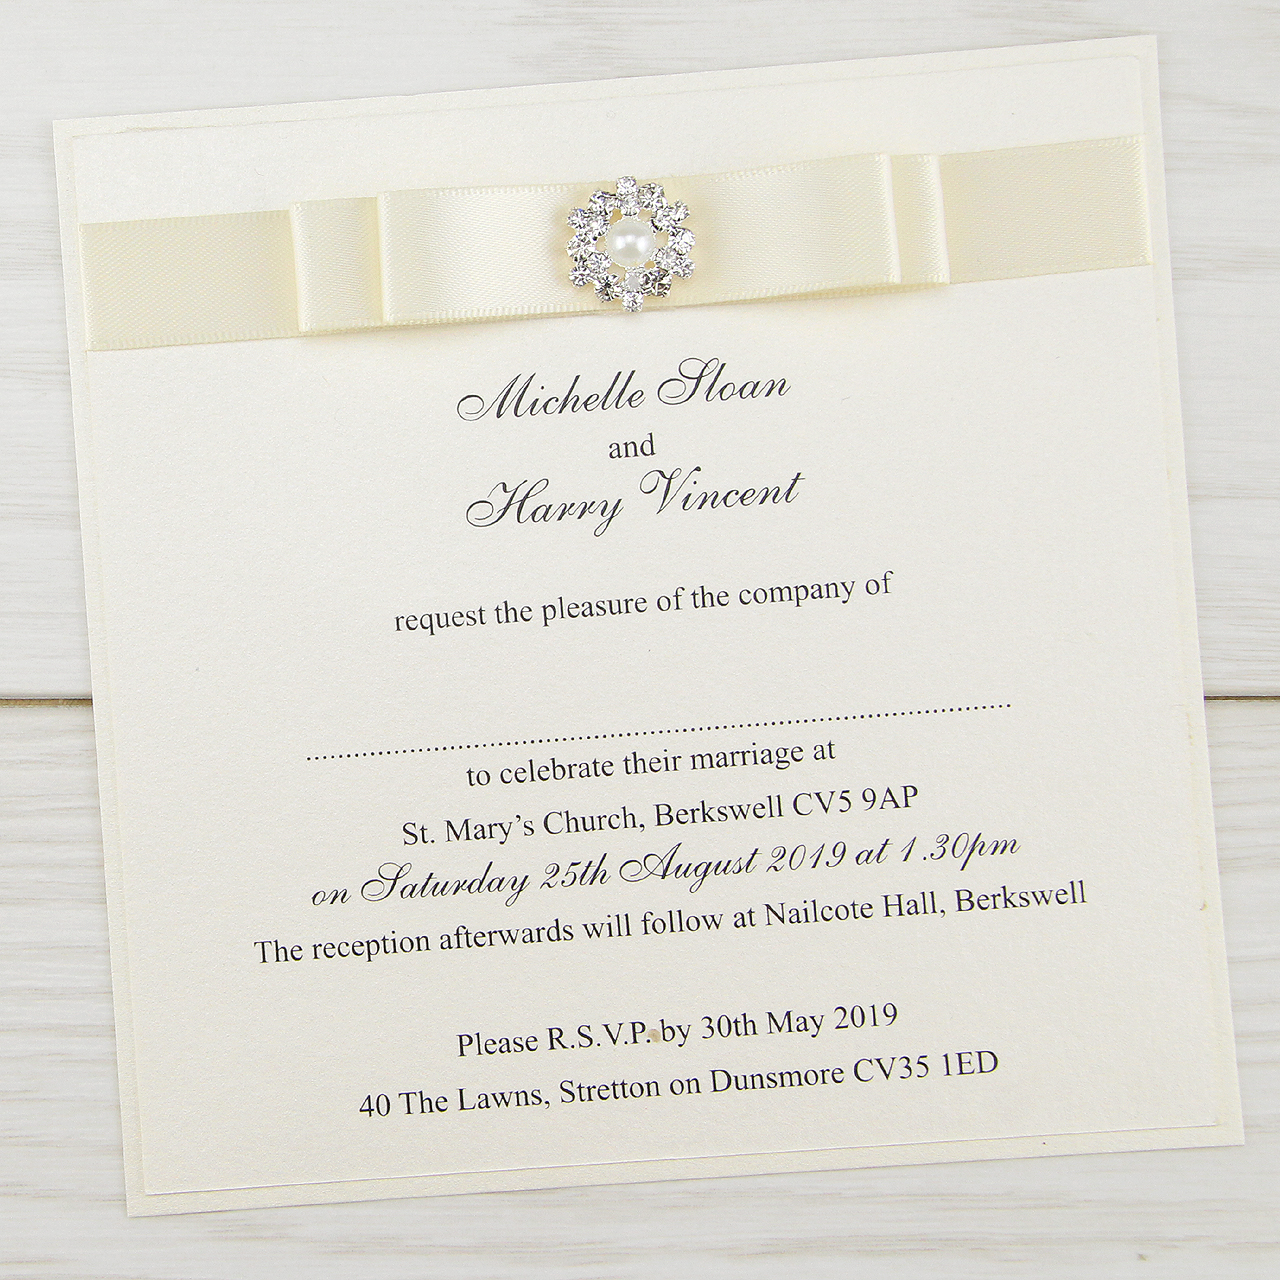 Wedding Images For Invitations: Dior Bow Layered Square Wedding Invitation